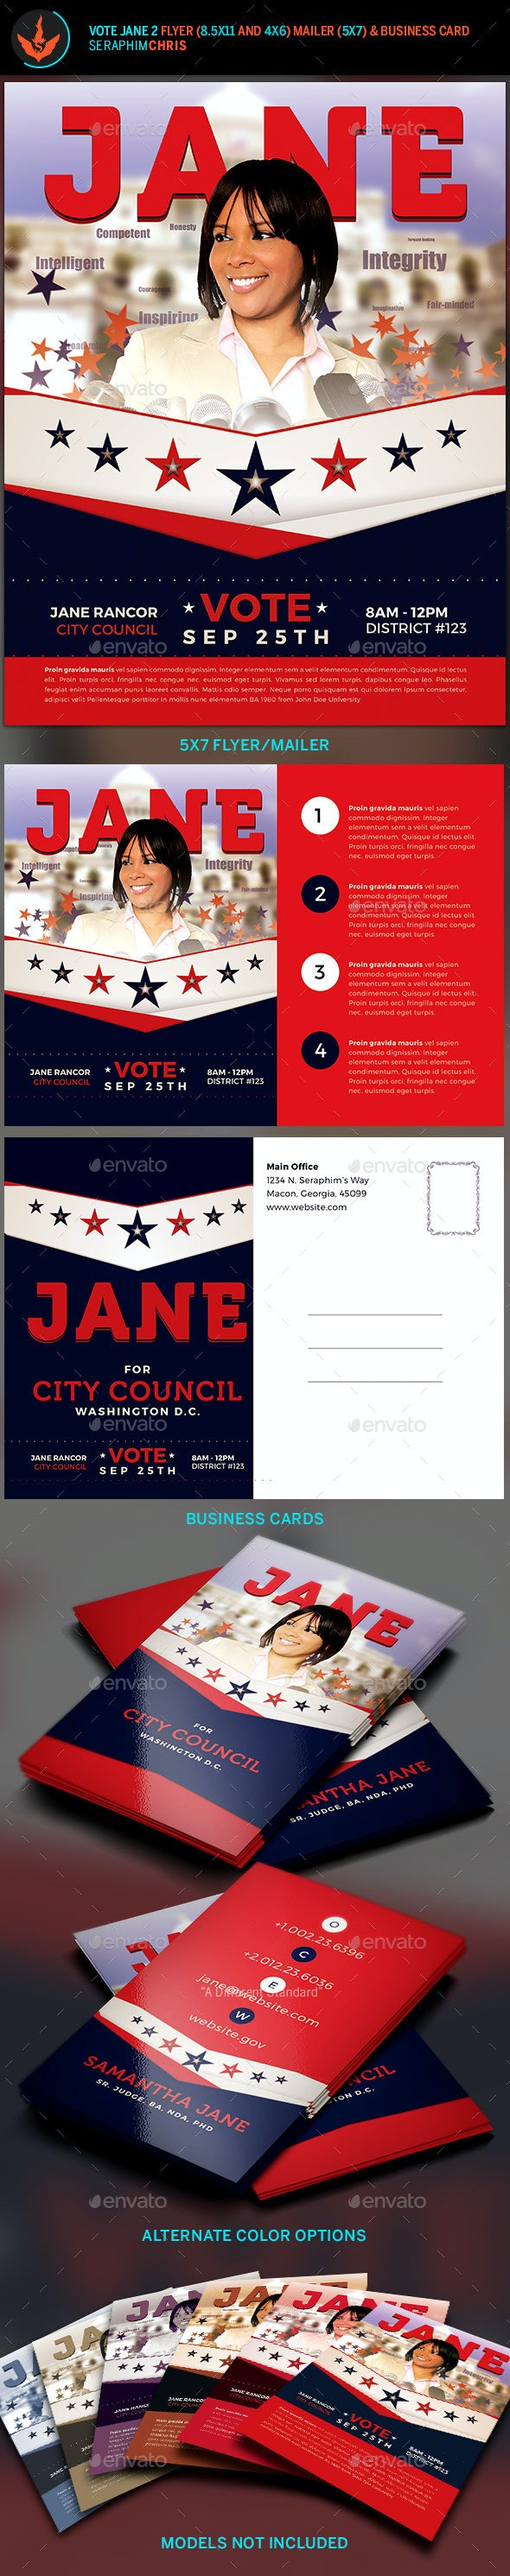 Vote Jane 2 - Political Flyer Template Kit - Corporate Flyers